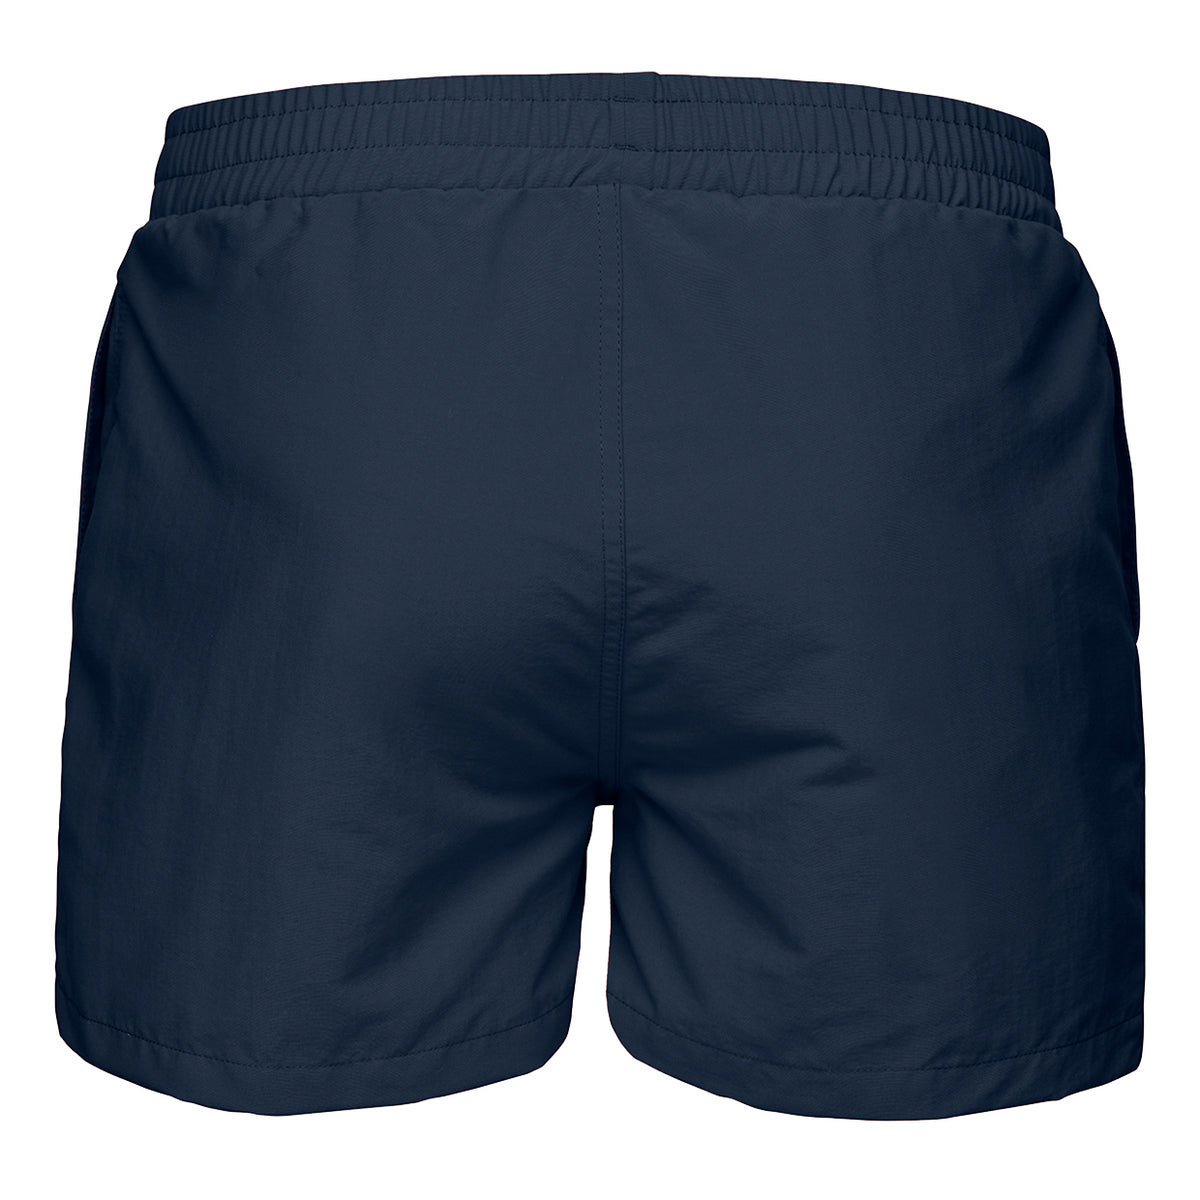 Breeze Swimshort - background::white,variant::Navy